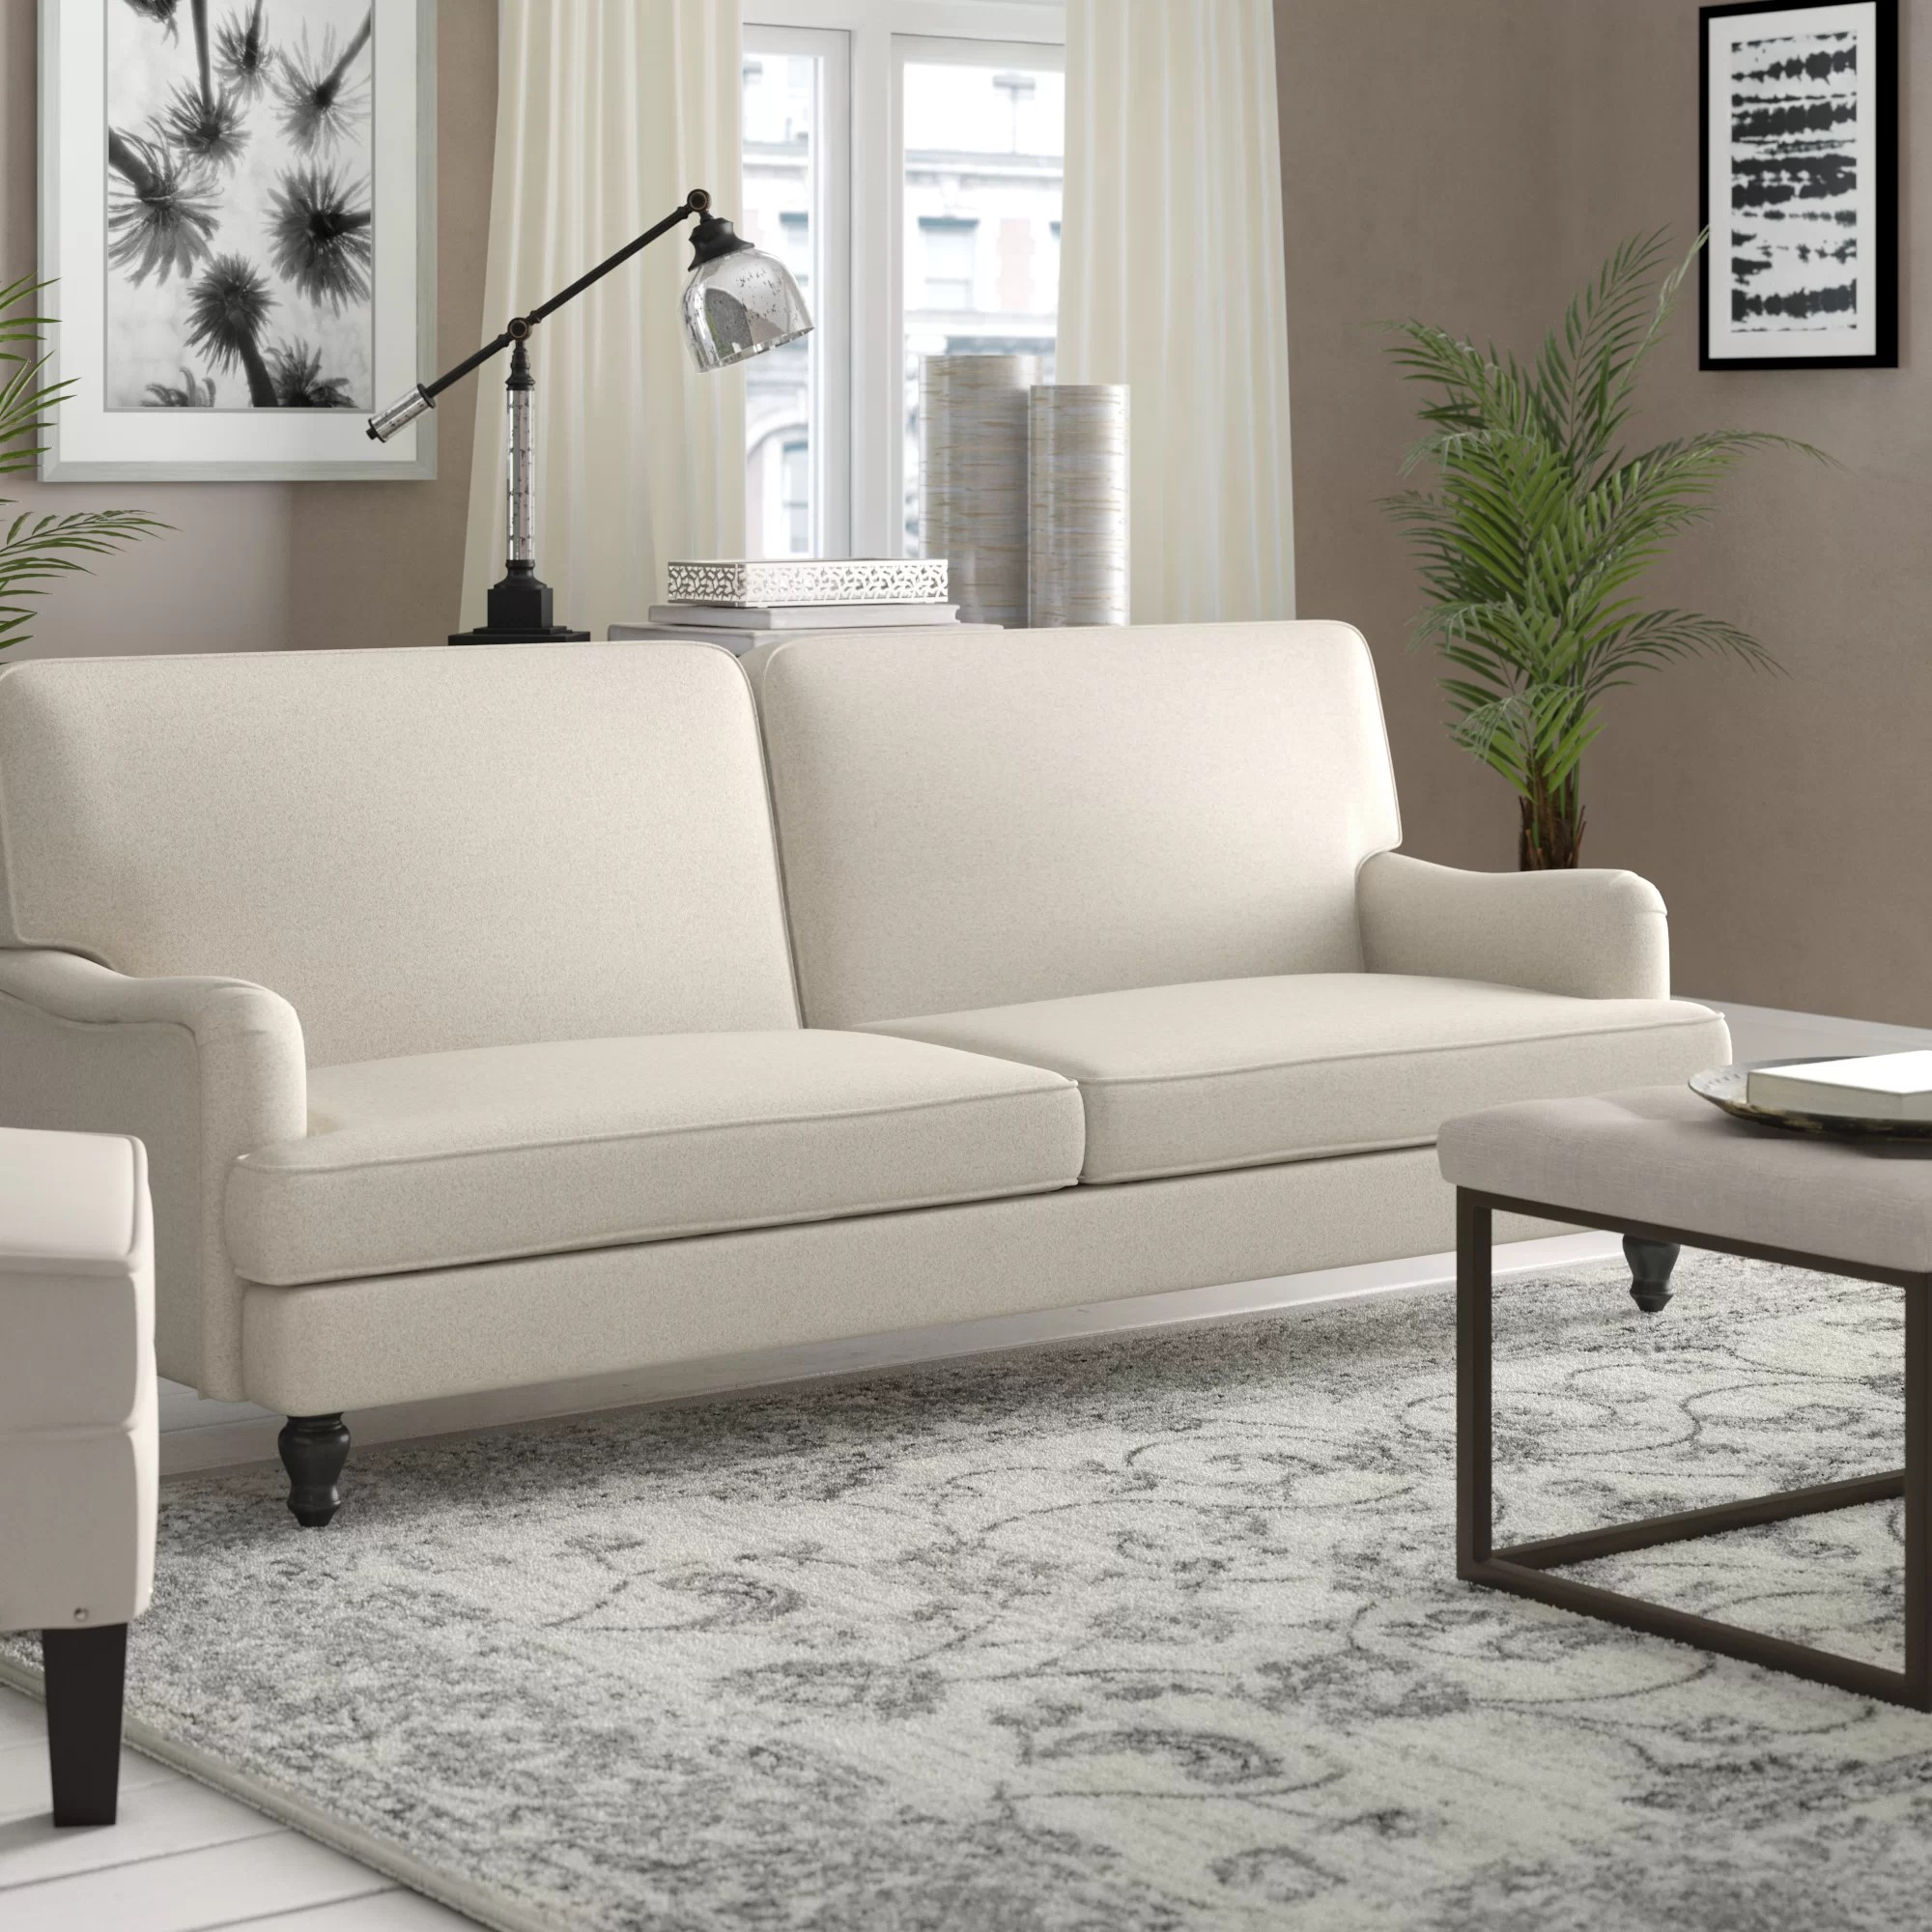 Table Clic Clac Anthem 4 Seater Clic Clac Sofa Bed